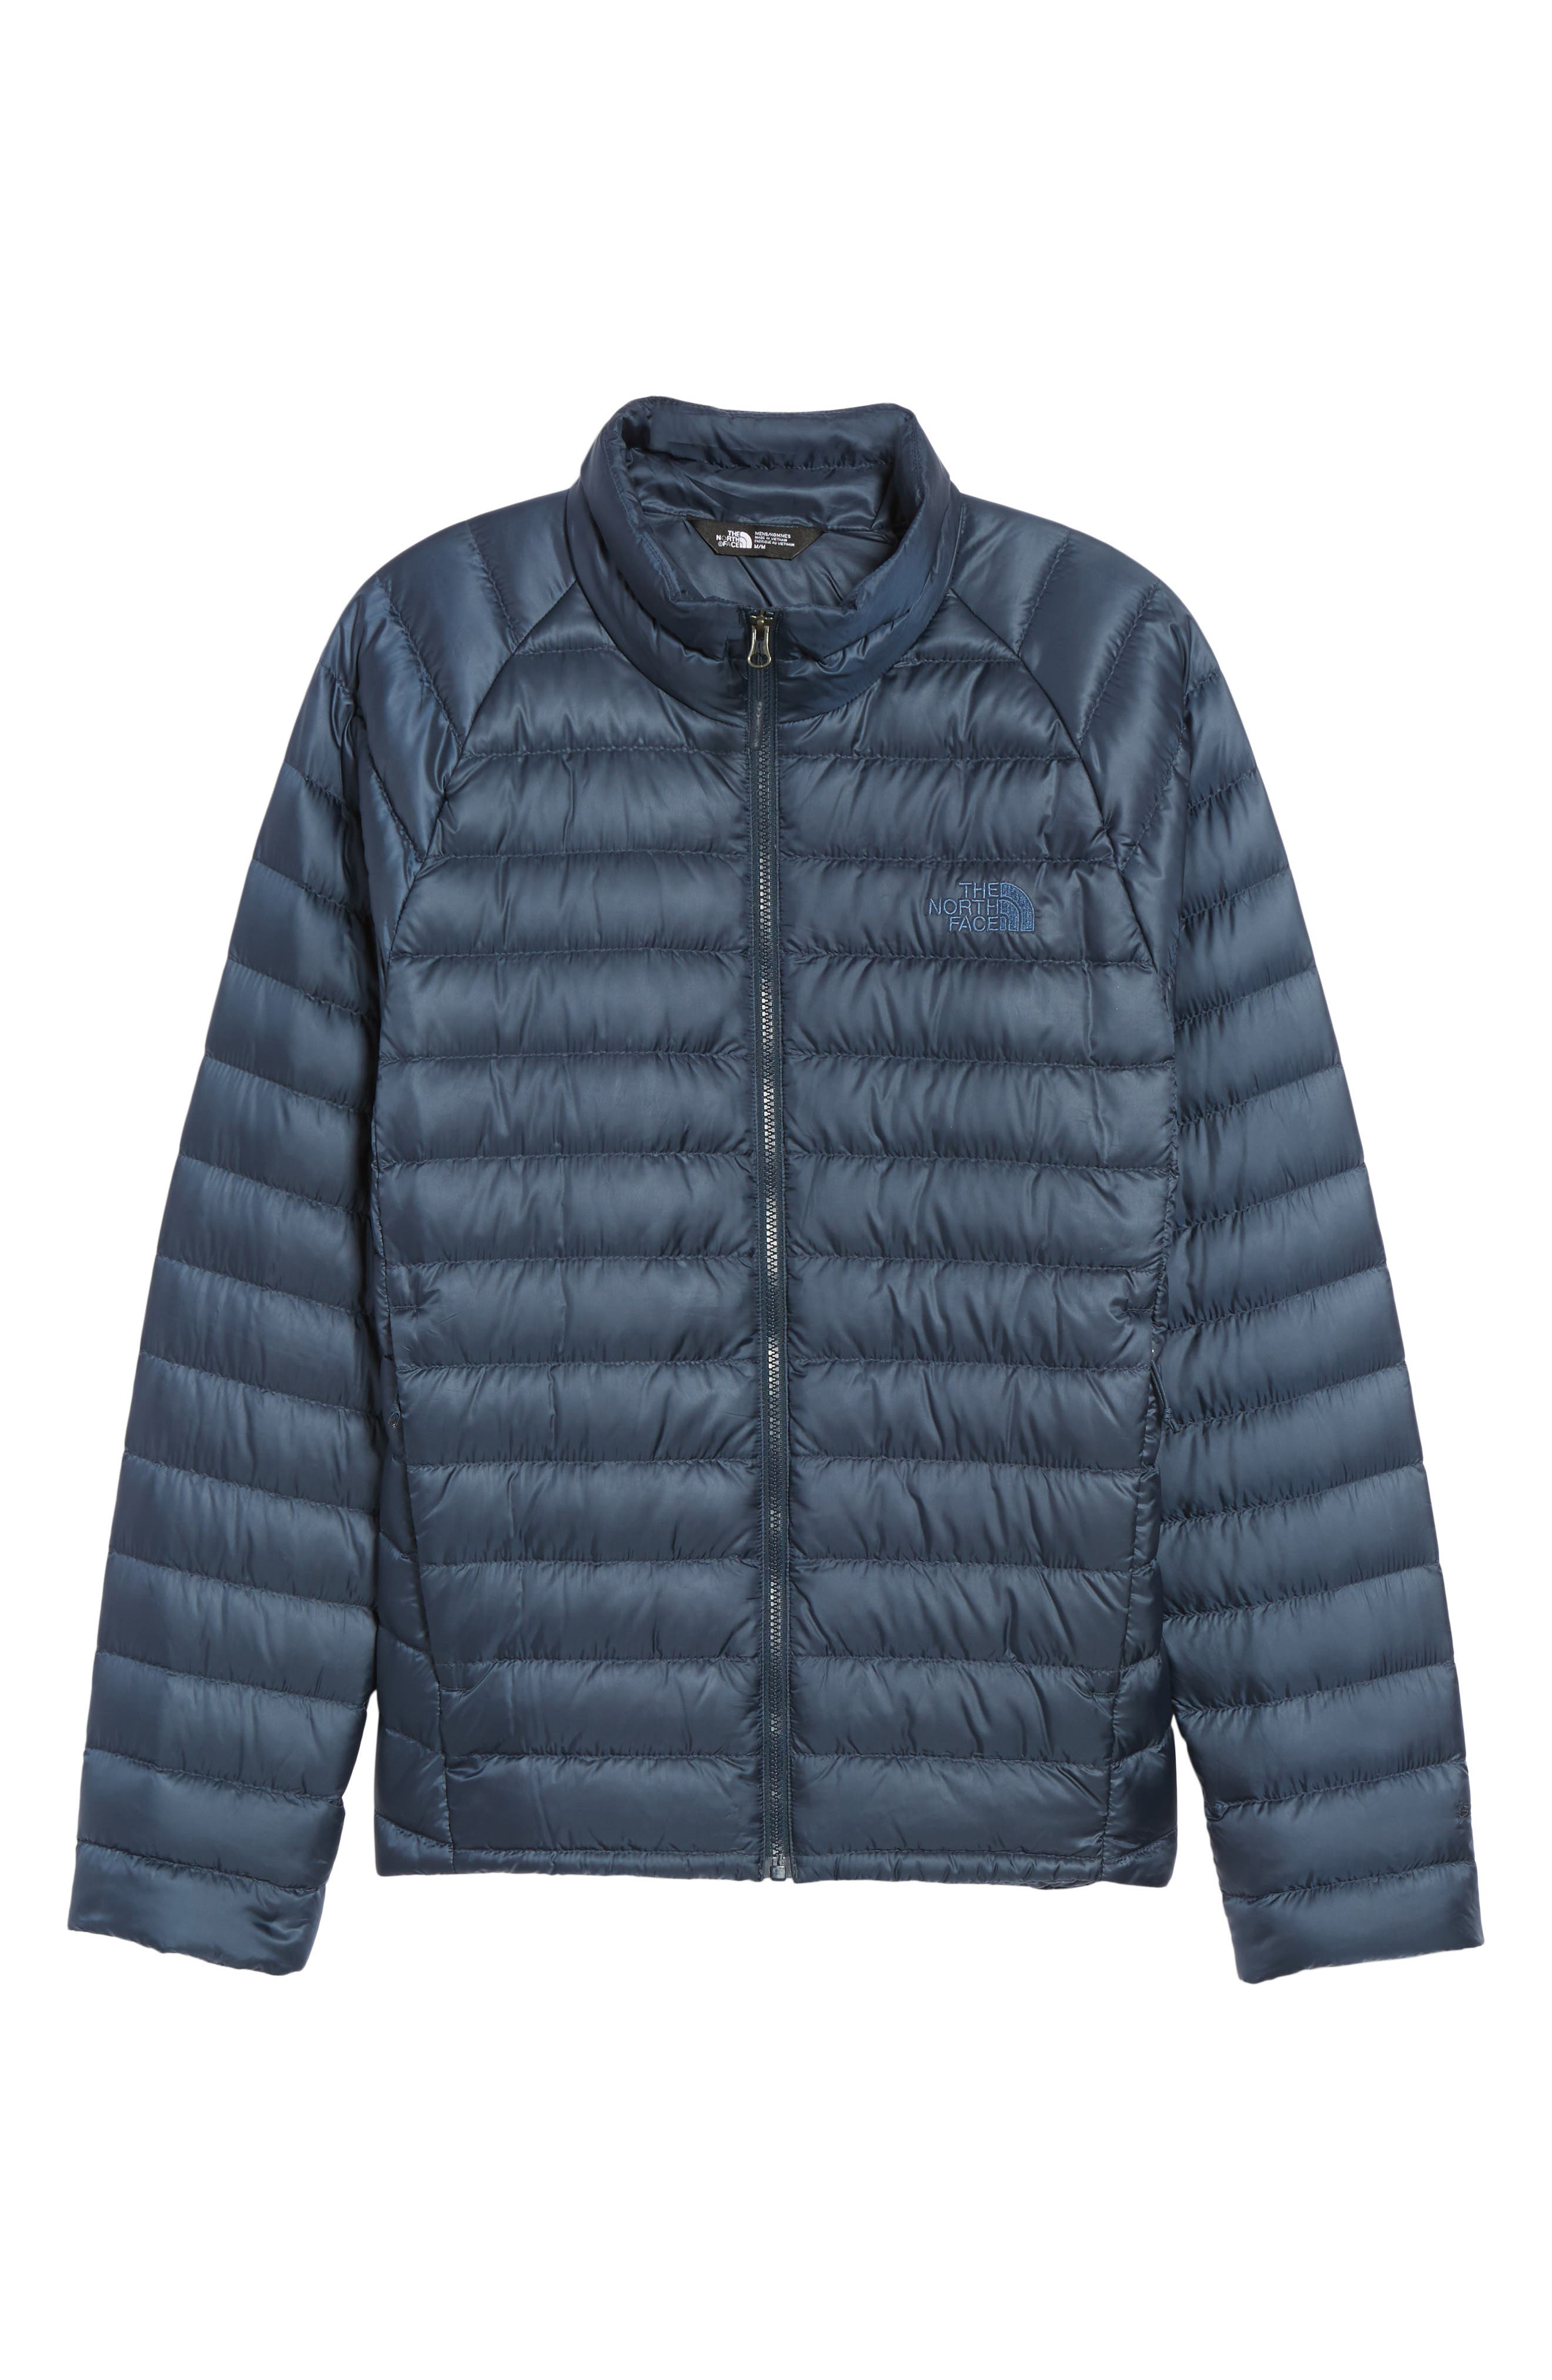 Trevail Water Repellent Packable Down Jacket,                             Alternate thumbnail 6, color,                             Urban Navy/ Urban Navy